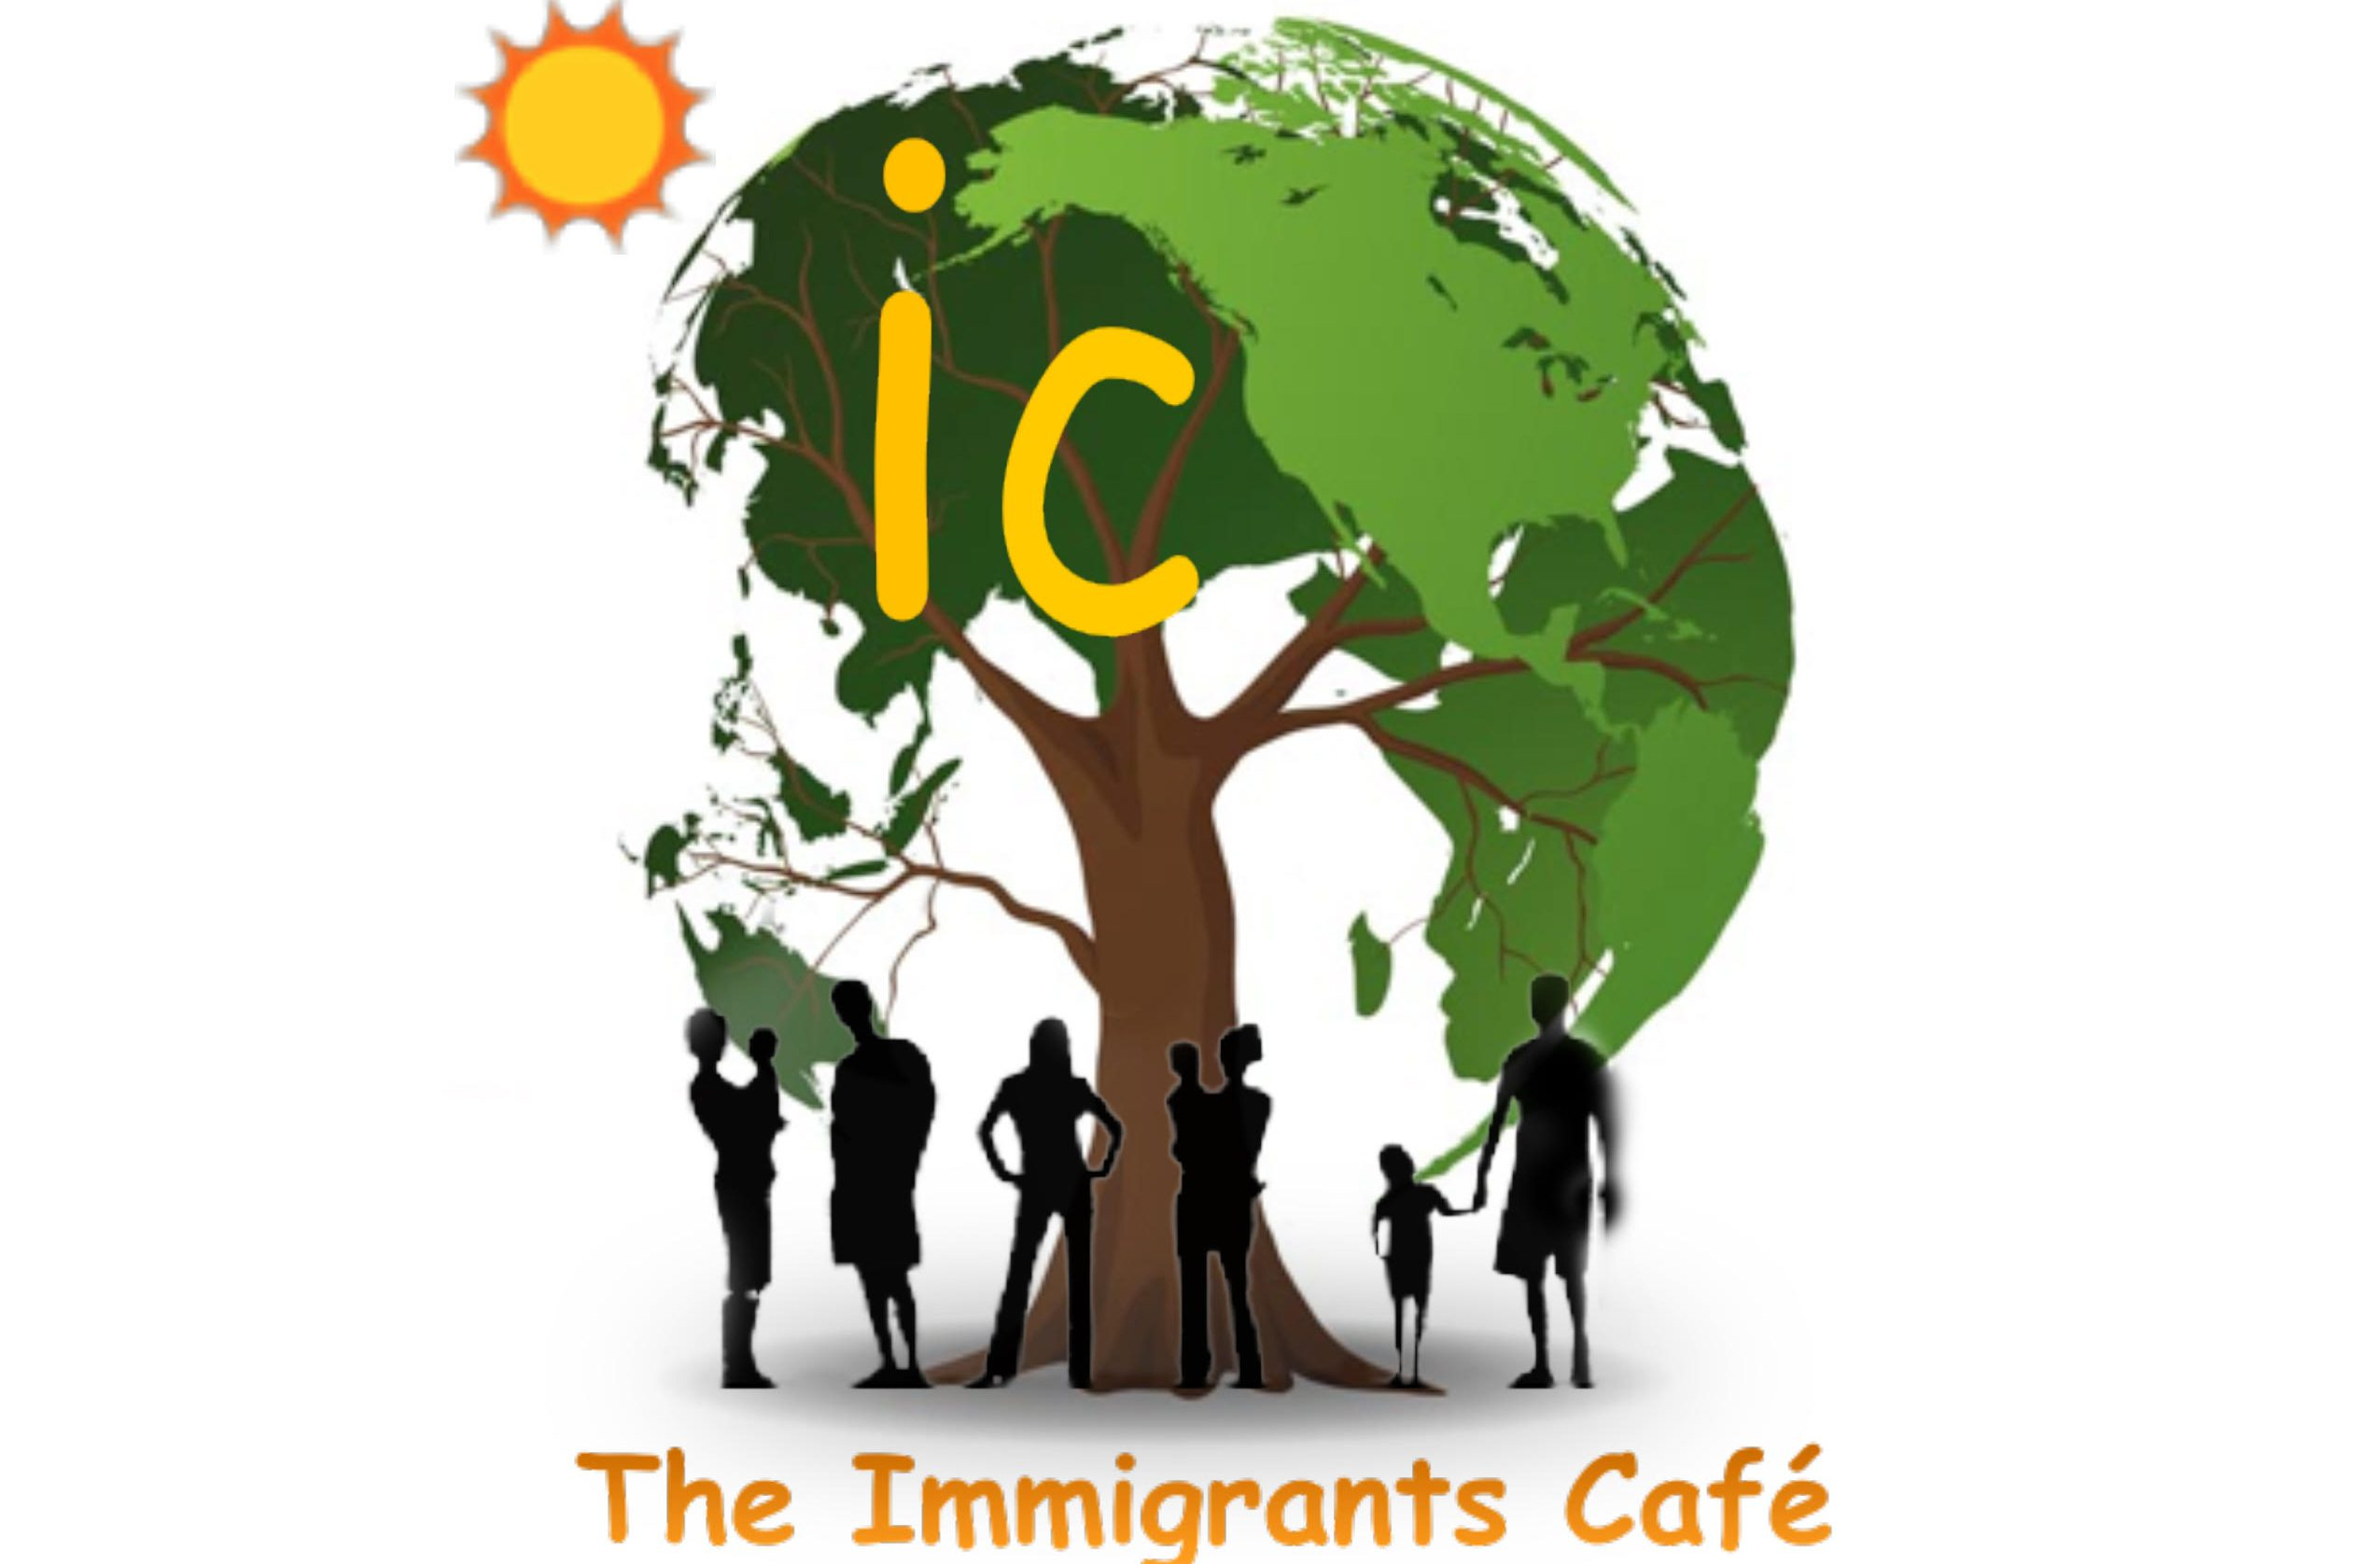 The Immigrants Café